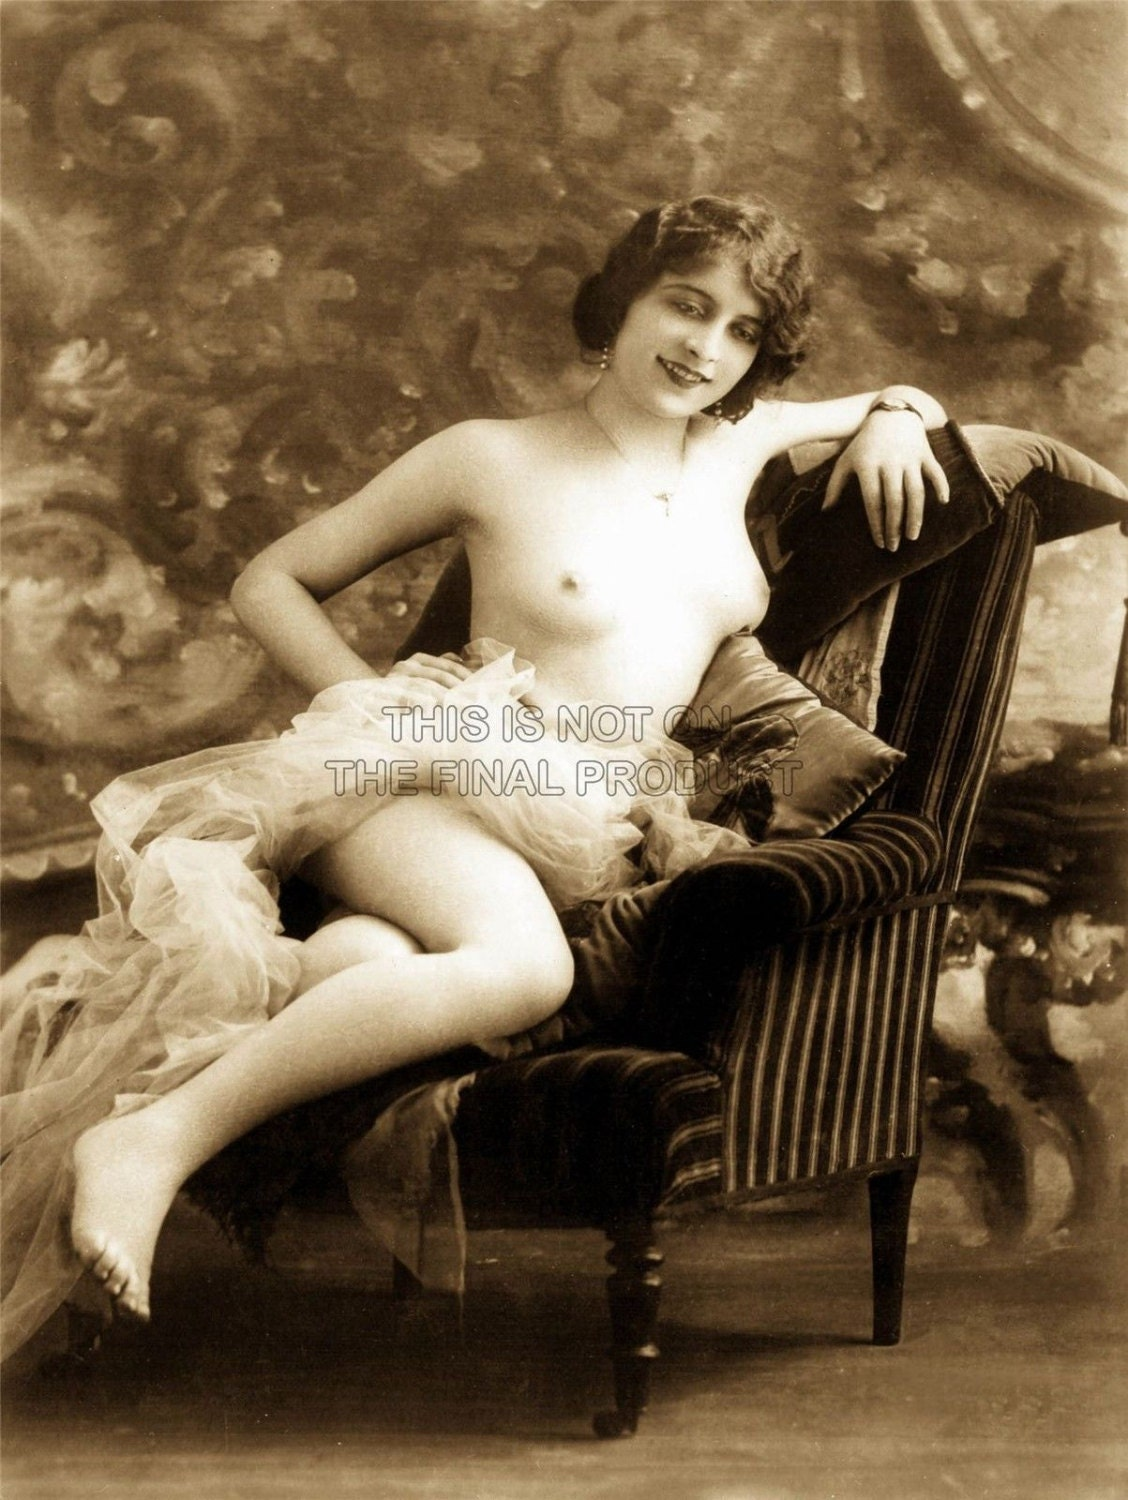 Vintage french erotic postcards gay